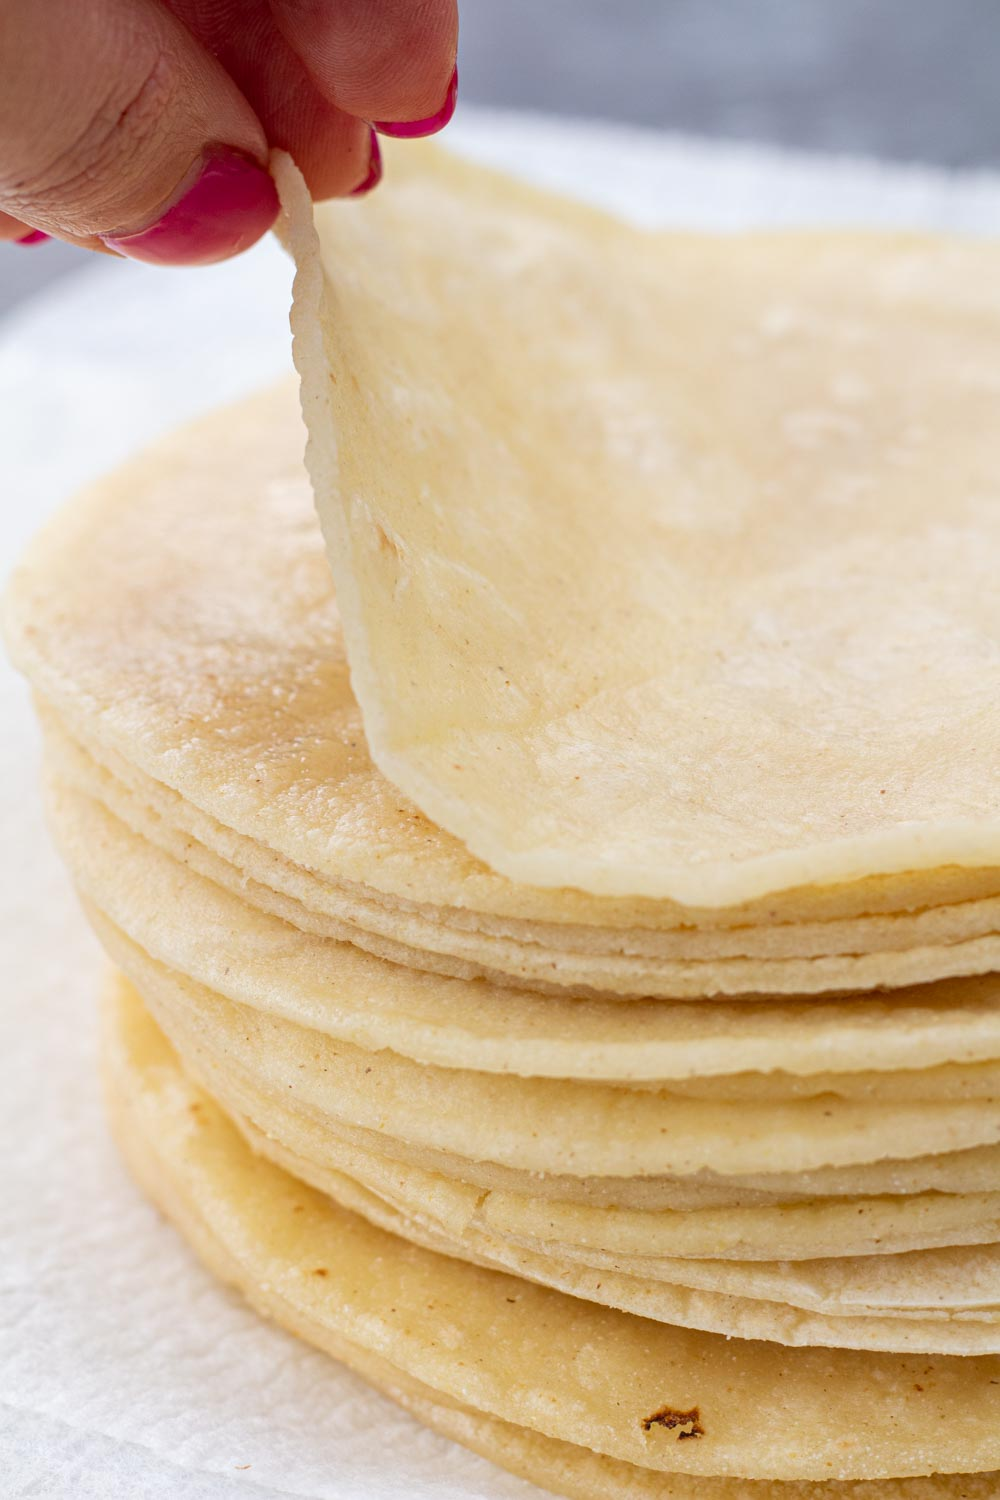 A stack of fried and softened corn tortillas on a paper towel.